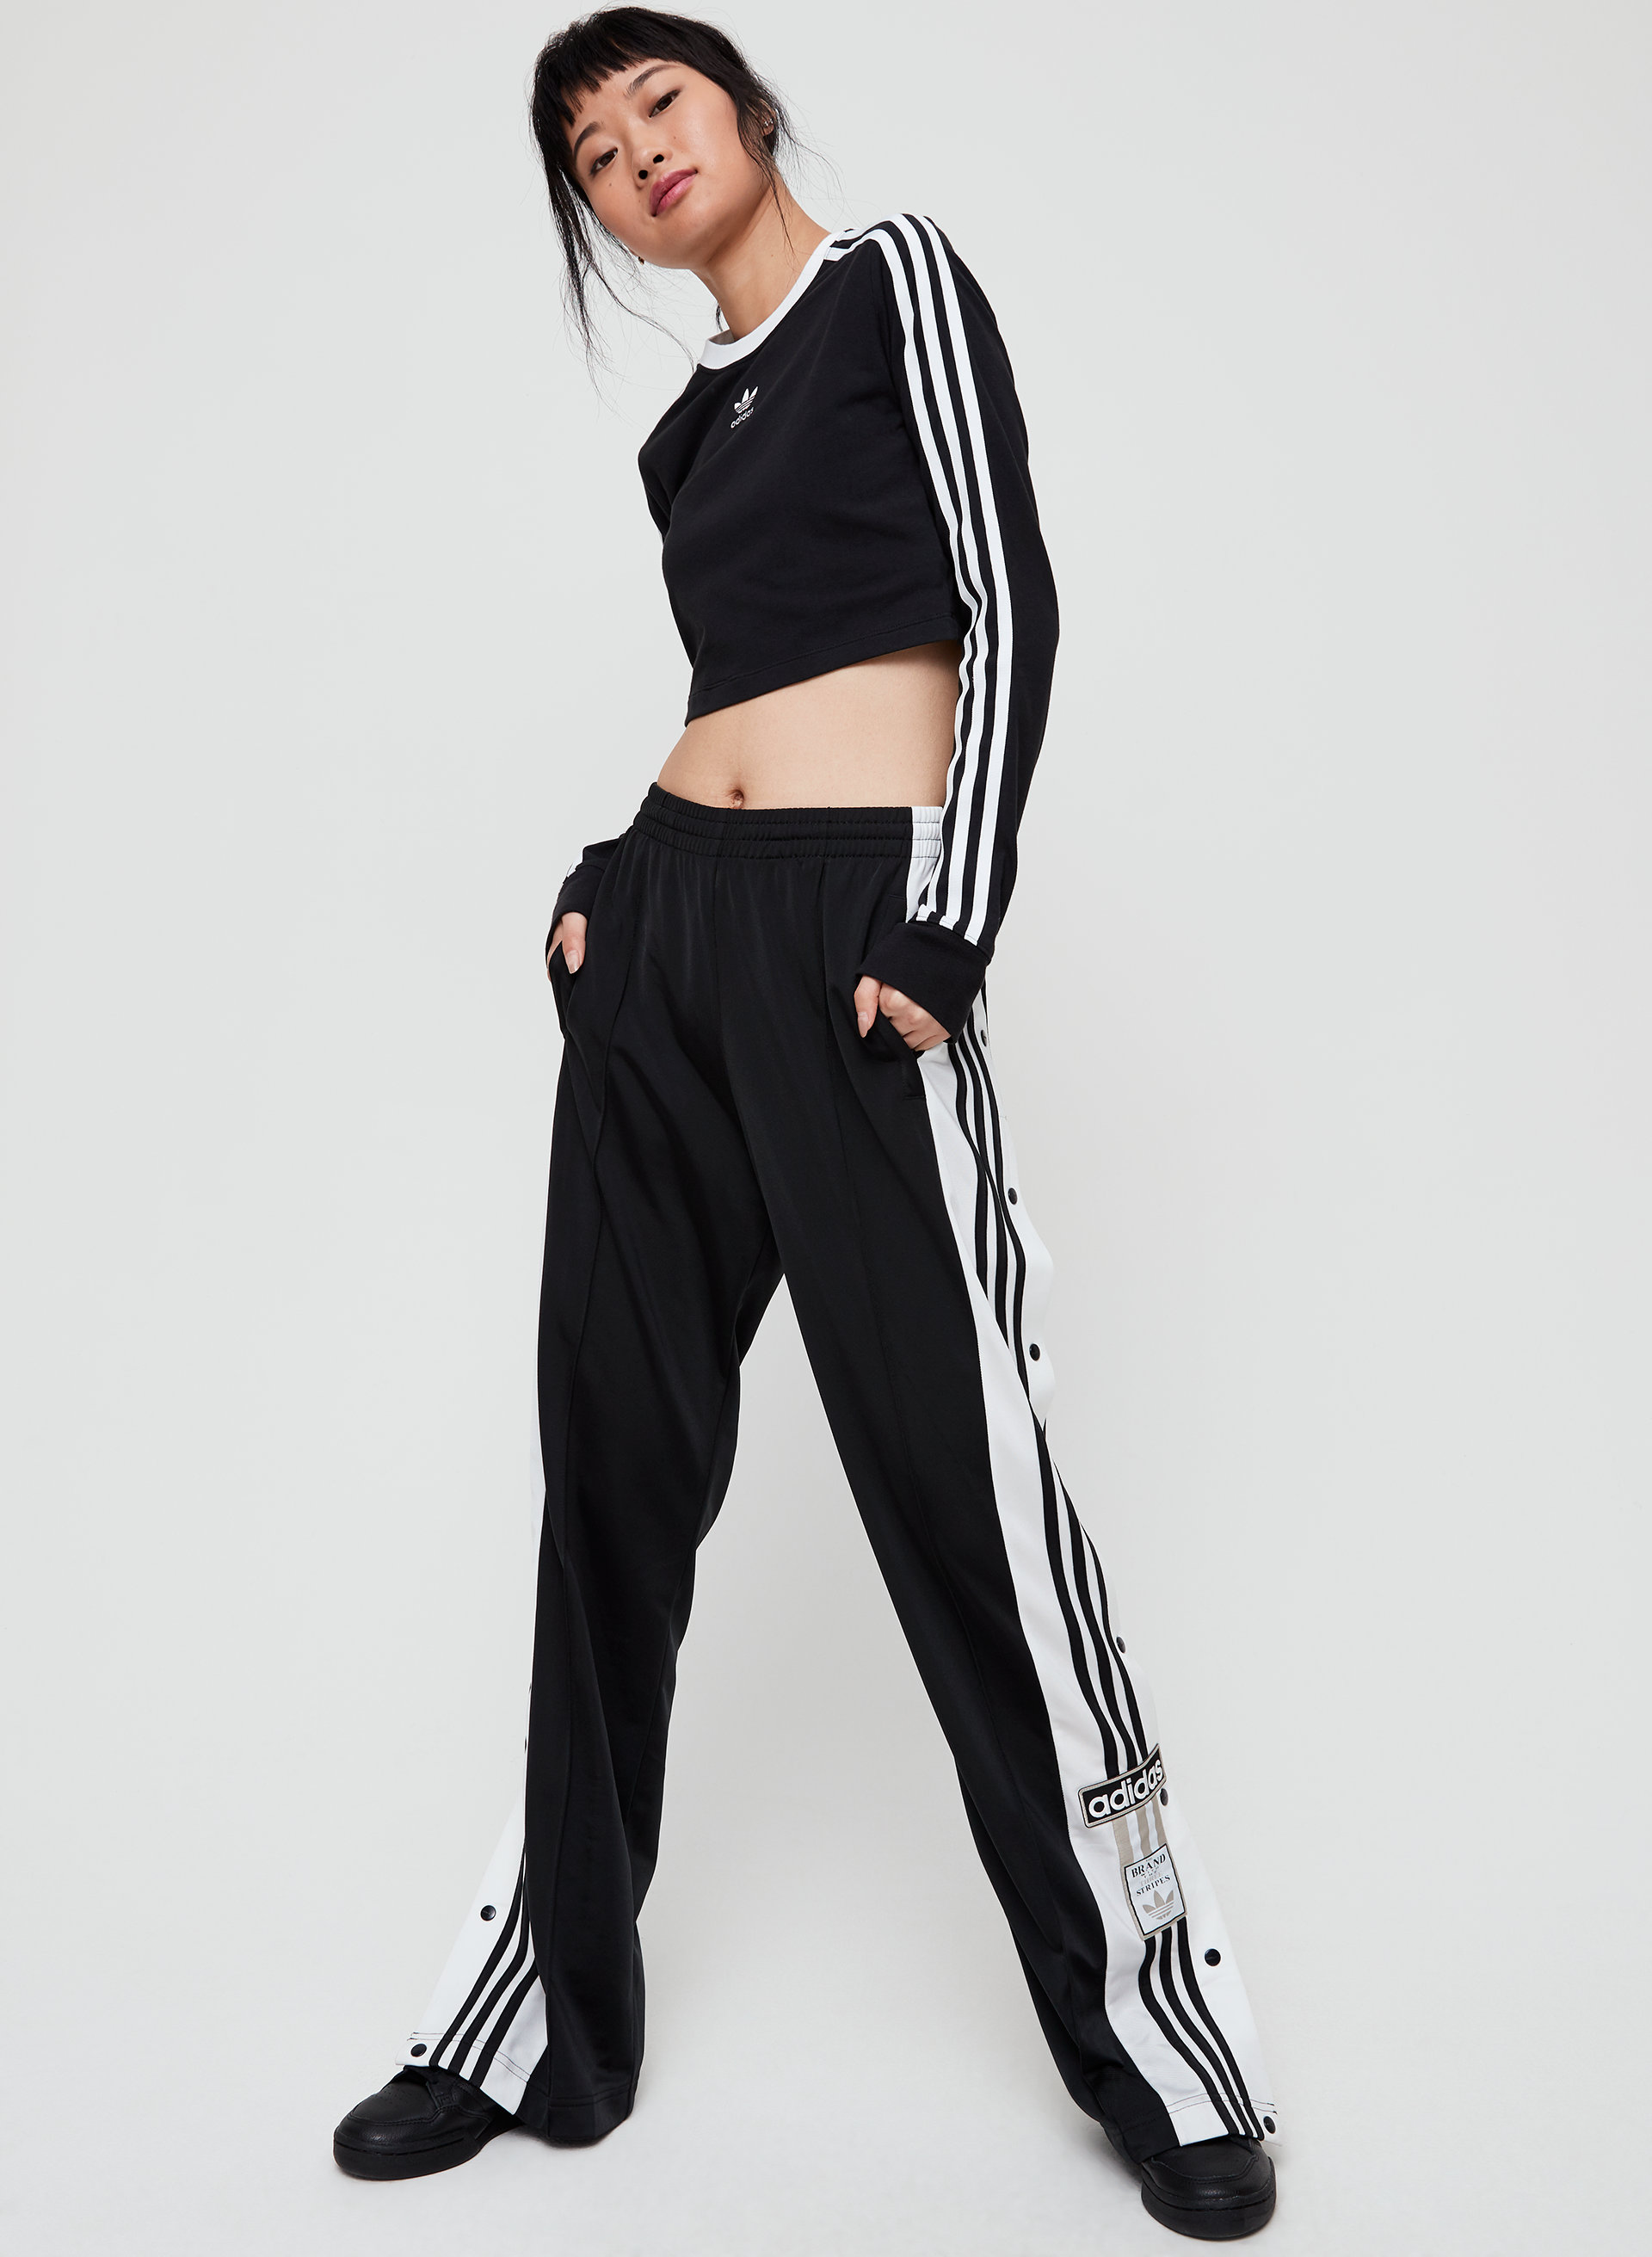 adidas pants adibreak